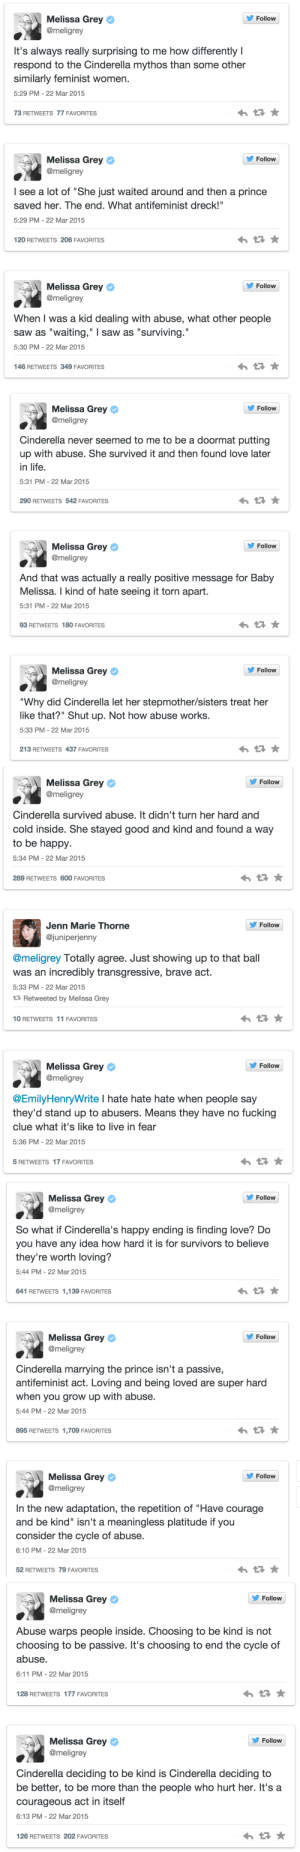 "jefgodesky:  neurodiversitysci:  imagineagreatadventure:  I just thought this set of tweets was really important.  This changes everything.   There's more than one way to see any story worth telling. The one that said nothing to you might be precisely the one that someone else needs to hear. : s, Melissa Grey  Follow  @meligrey  It's always really surprising to me how differently I  respond to the Cinderella mythos than some other  similarly feminist women.  5:29 PM-22 Mar 2015  73 RETWEETS 77 FAVORITES  Follow  Melissa Grey  @meligrey  I see a lot of ""She just waited around and then a prince  saved her. The end. What antifeminist dreck!""  5:29 PM-22 Mar 2015  120 RETWEETS 206 FAVORITES  s, Melissa Grey  Follow  @meligrey  When I was a kid dealing with abuse, what other people  saw as ""waiting,"" I saw as ""surviving.""  5:30 PM- 22 Mar 2015  146 RETWEETS 349 FAVORITES   Melissa Grey ф  @meligrey  ' Follow  Cinderella never seemed to me to be a doormat putting  up with abuse. She survived it and then found love later  in life  5:31 PM-22 Mar 2015  290 RETWEETS 542 FAVORITES  Follow  Melissa Grey ф  @meligrey  And that was actually a really positive message for Baby  Melissa. I kind of hate seeing it torn apart.  5:31 PM-22 Mar 2015  93 RETWEETS 180 FAVORITES  Follow  Melissa Grey ф  @meligrey  ""Why did Cinderella let her stepmother/sisters treat her  like that?"" Shut up. Not how abuse works.  5:33 PM-22 Mar 2015  213 RETWEETS 437 FAVORITES   s, Melissa Grey  @meligrey  Follow  Cinderella survived abuse. It didn't turn her hard and  cold inside. She stayed good and kind and found a way  to be happy  5:34 PM- 22 Mar 2015  289 RETWEETS 600 FAVORITES  Follovw  Jenn Marie Thorne  @juniperjenny  @meligrey Totally agree. Just showing up to that ball  was an incredibly transgressive, brave act.  5:33 PM- 22 Mar 2015  Retweeted by Melissa Grey  10 RETWEETS 11 FAVORITES  s, Melissa Grey  Follow  @meligrey  @EmilyHenryWrite I hate hate hate when people say  they'd stand up to abusers. Means they have no fucking  clue what it's like to live in fear  5:36 PM- 22 Mar 2015  5 RETWEETS 17 FAVORITES   Follow  Melissa Grey ф  @meligrey  So what if Cinderella's happy ending is finding love? Do  you have any idea how hard it is for survivors to believe  they're worth loving?  5:44 PM-22 Mar 2015  641 RETWEETS 1,139 FAVORITES  Follow  Melissa Grey  @meligrey  Cinderella marrying the prince isn't a passive,  antifeminist act. Loving and being loved are super hard  when you grow up with abuse.  5:44 PM-22 Mar 2015  895 RETWEETS 1,709 FAVORITES  Follovw  Melissa Grey ф  @meligrey  In the new adaptation, the repetition of ""Have courage  and be kind"" isn't a meaningless platitude if you  consider the cycle of abuse.  6:10 PM -22 Mar 2015  52 RETWEETS 79 FAVORITES   Melissa Grey  @meligrey  Follow  Abuse warps people inside. Choosing to be kind is not  choosing to be passive. It's choosing to end the cycle of  abuse.  6:11 PM-22 Mar 2015  128 RETWEETS 177 FAVORITES  Melissa Grey  @meligrey  Follow  Cinderella deciding to be kind is Cinderella deciding to  be better, to be more than the people who hurt her. It's a  courageous act in itself  6:13 PM-22 Mar 2015  126 RETWEETS 202 FAVORITES jefgodesky:  neurodiversitysci:  imagineagreatadventure:  I just thought this set of tweets was really important.  This changes everything.   There's more than one way to see any story worth telling. The one that said nothing to you might be precisely the one that someone else needs to hear."